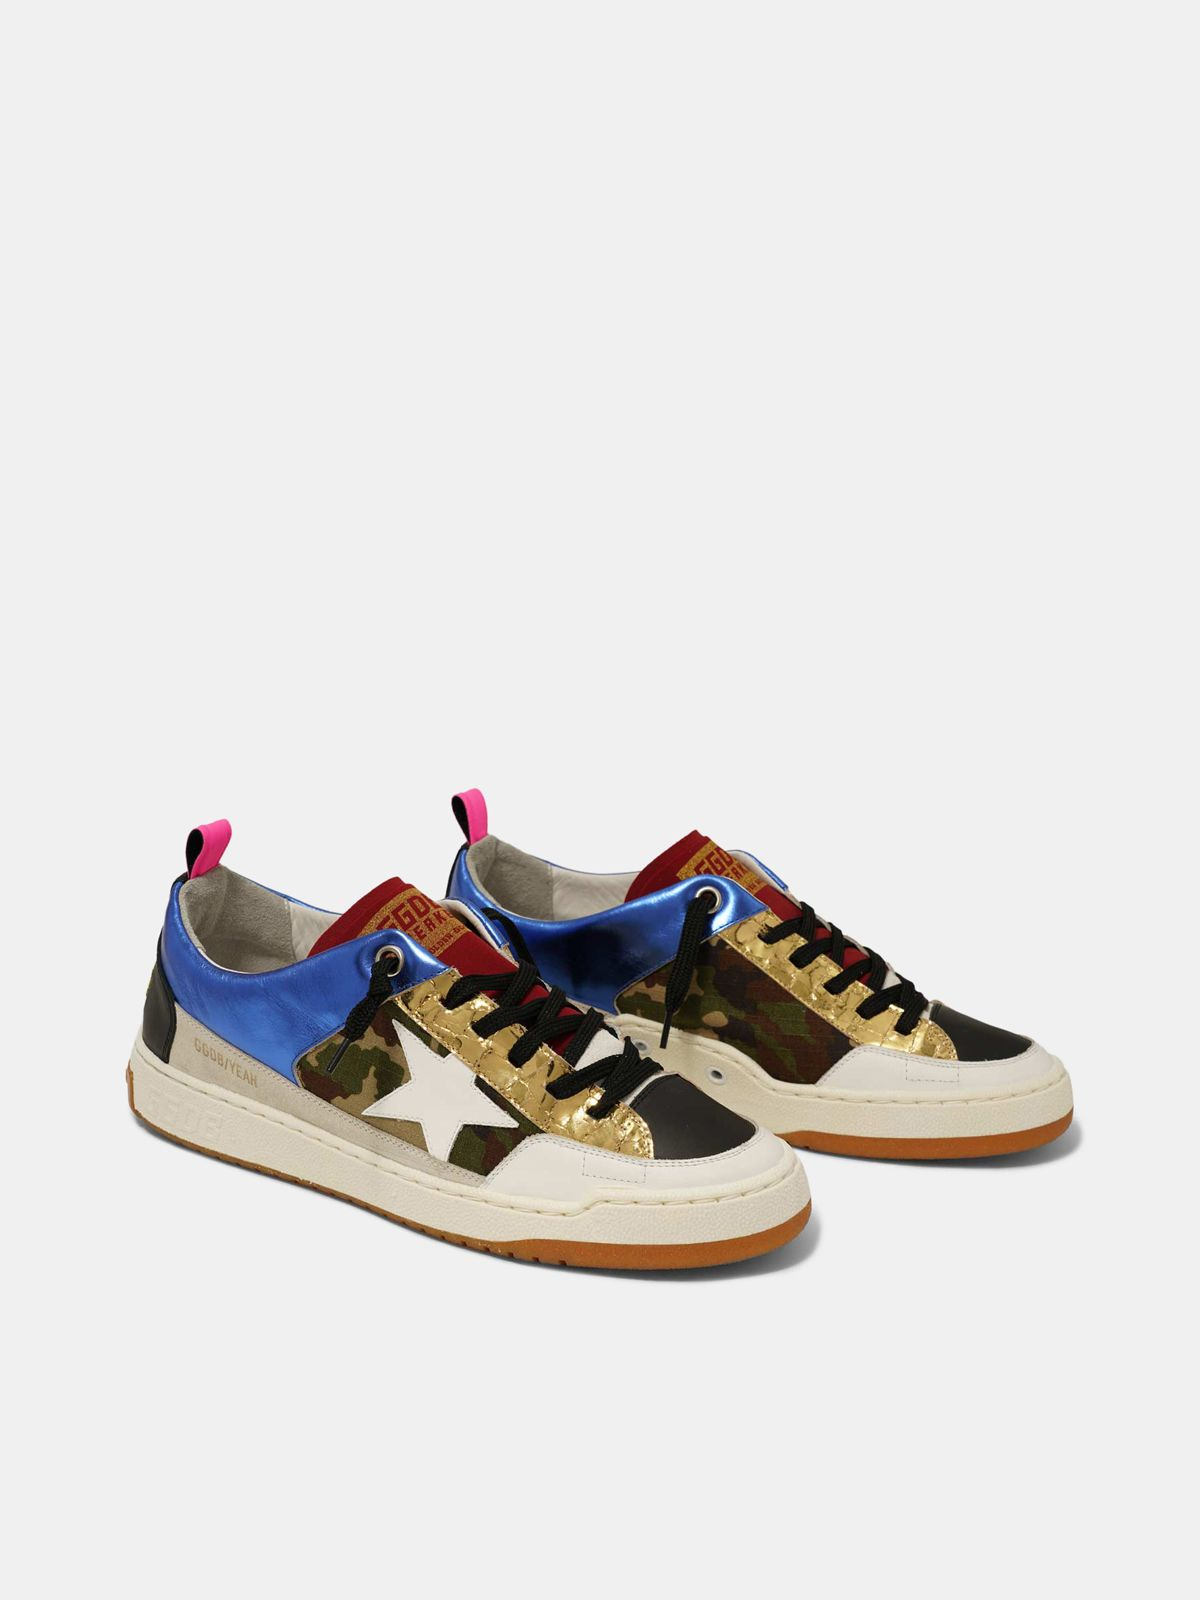 Golden Goose - Blue Yeah! sneakers with camouflage and white star in